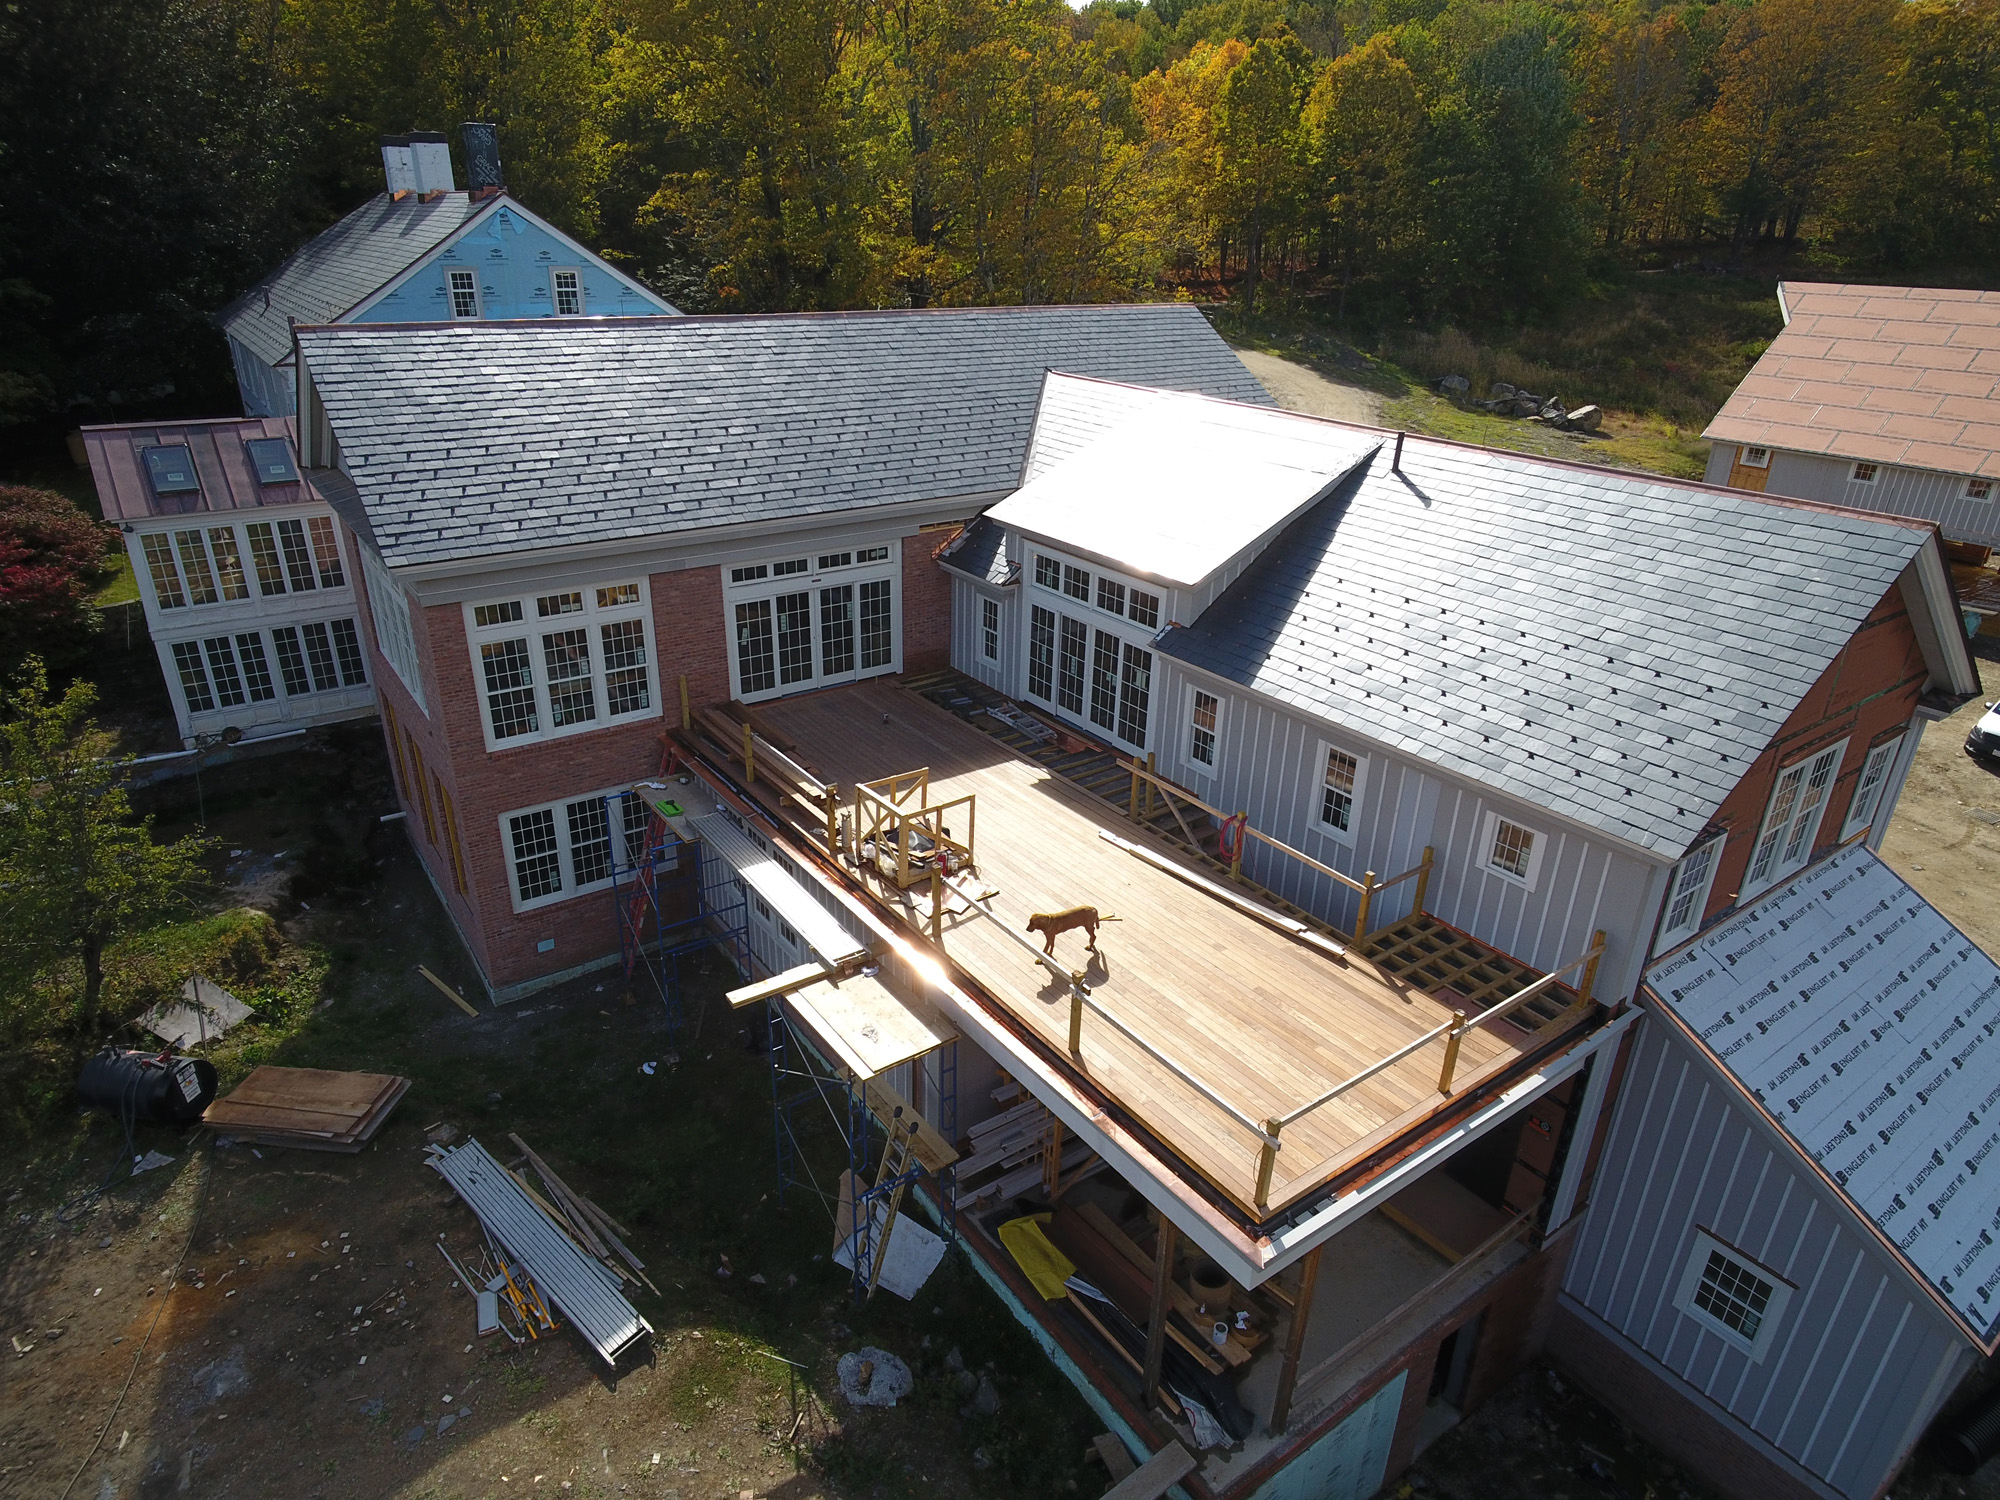 Under Construction with Dog in Massachusetts